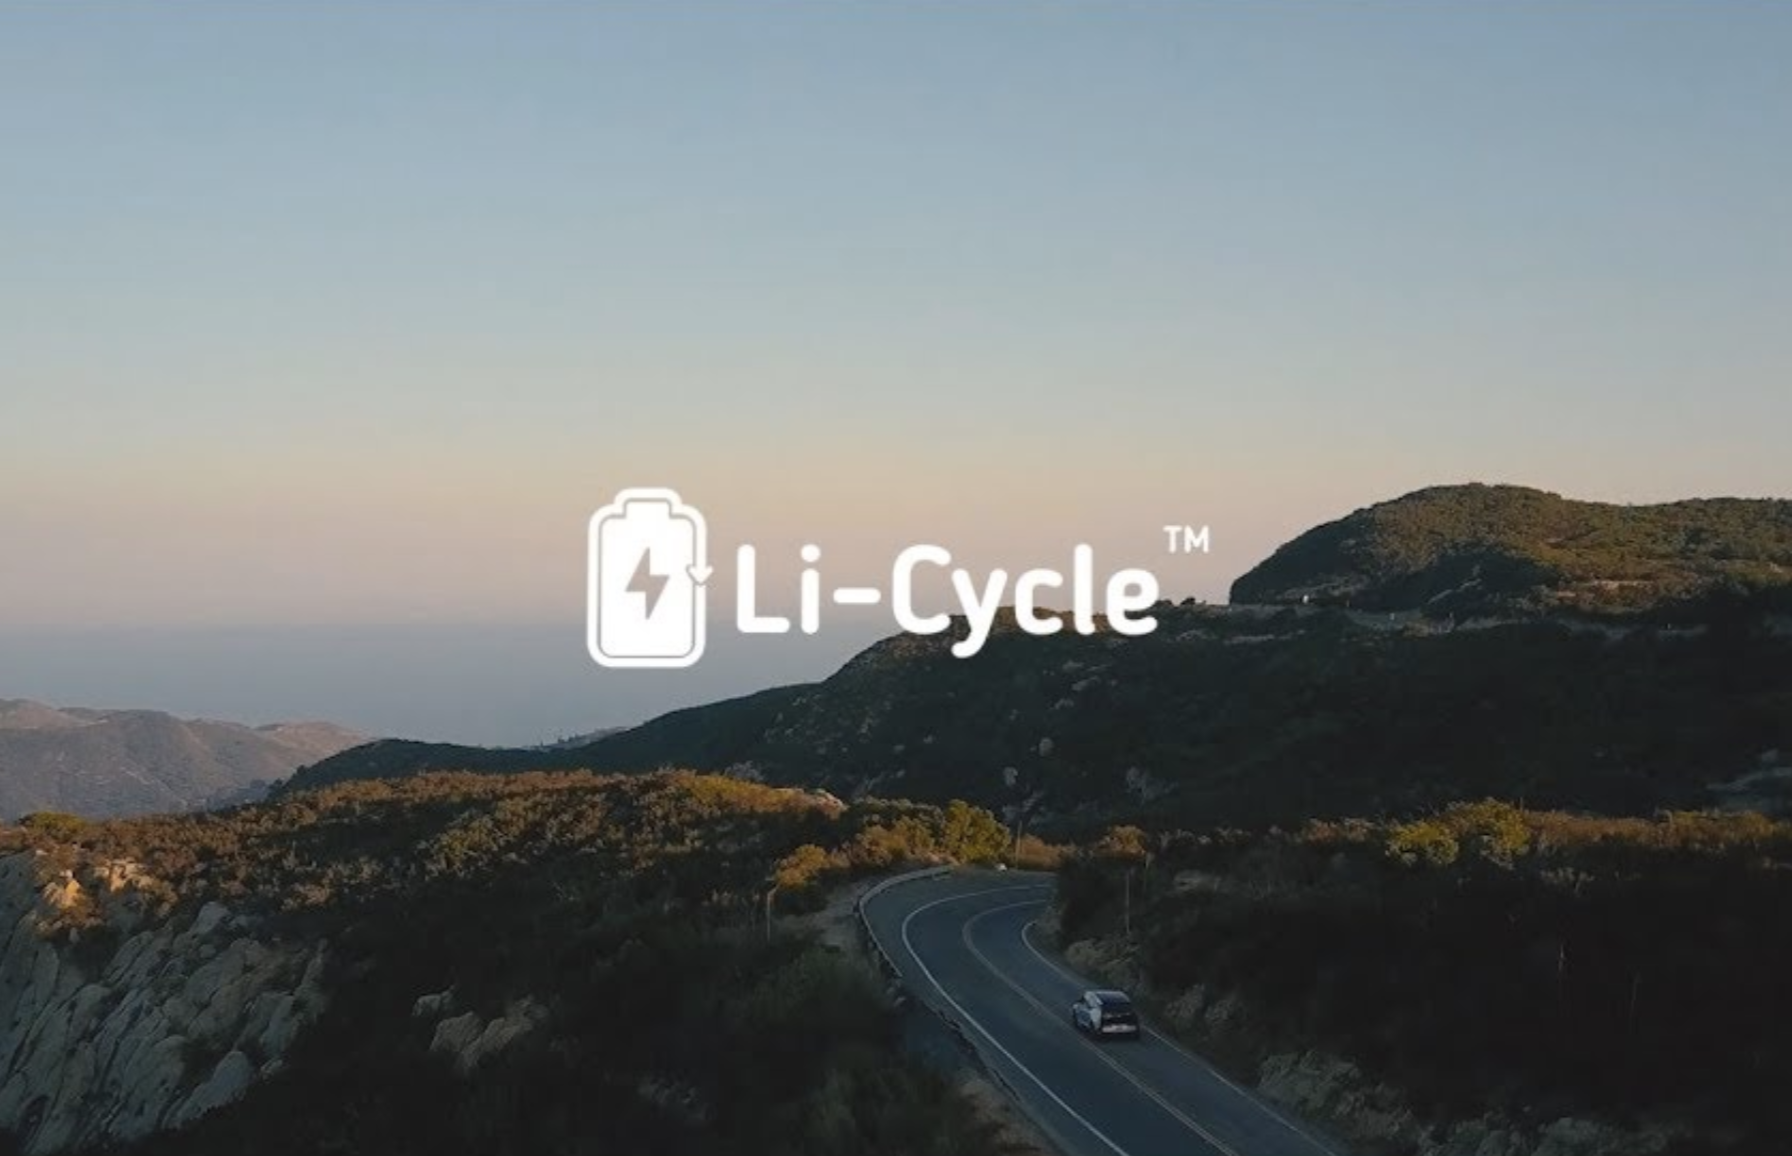 LI-Cycle - Low cost, sustainable and safe lithium-ion battery recycling